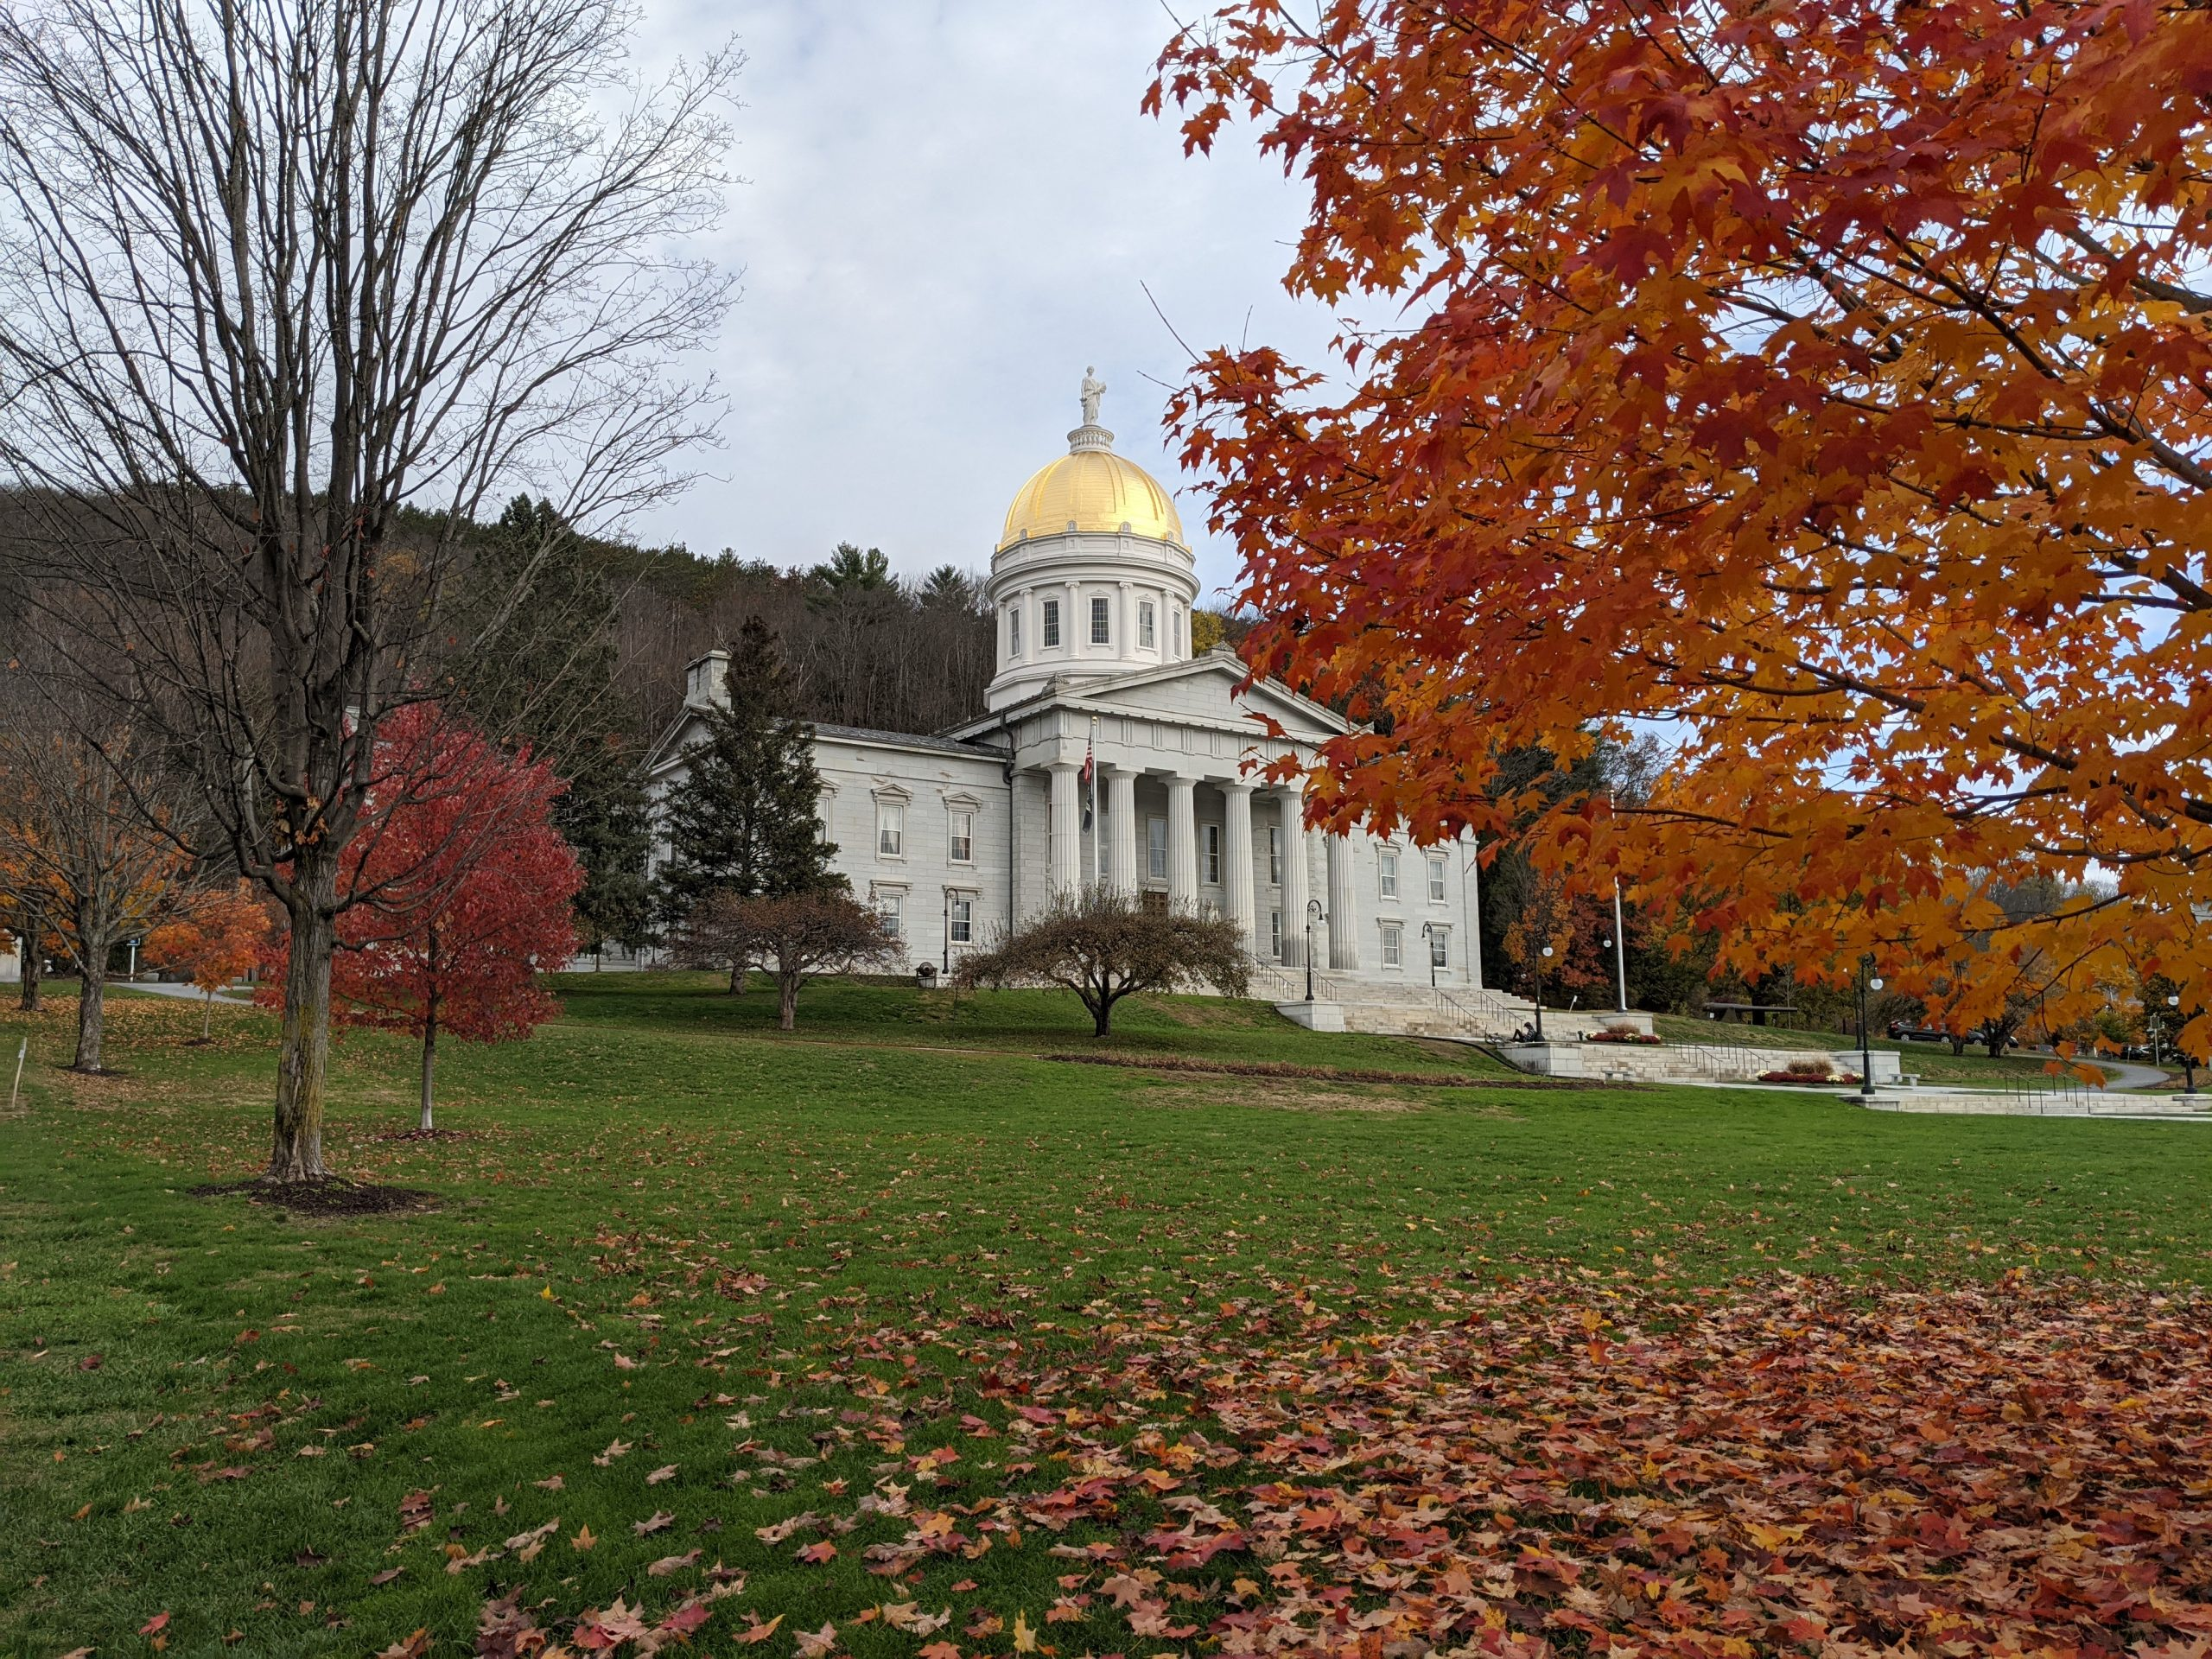 Vermont State Capital, Montpelier Vermont